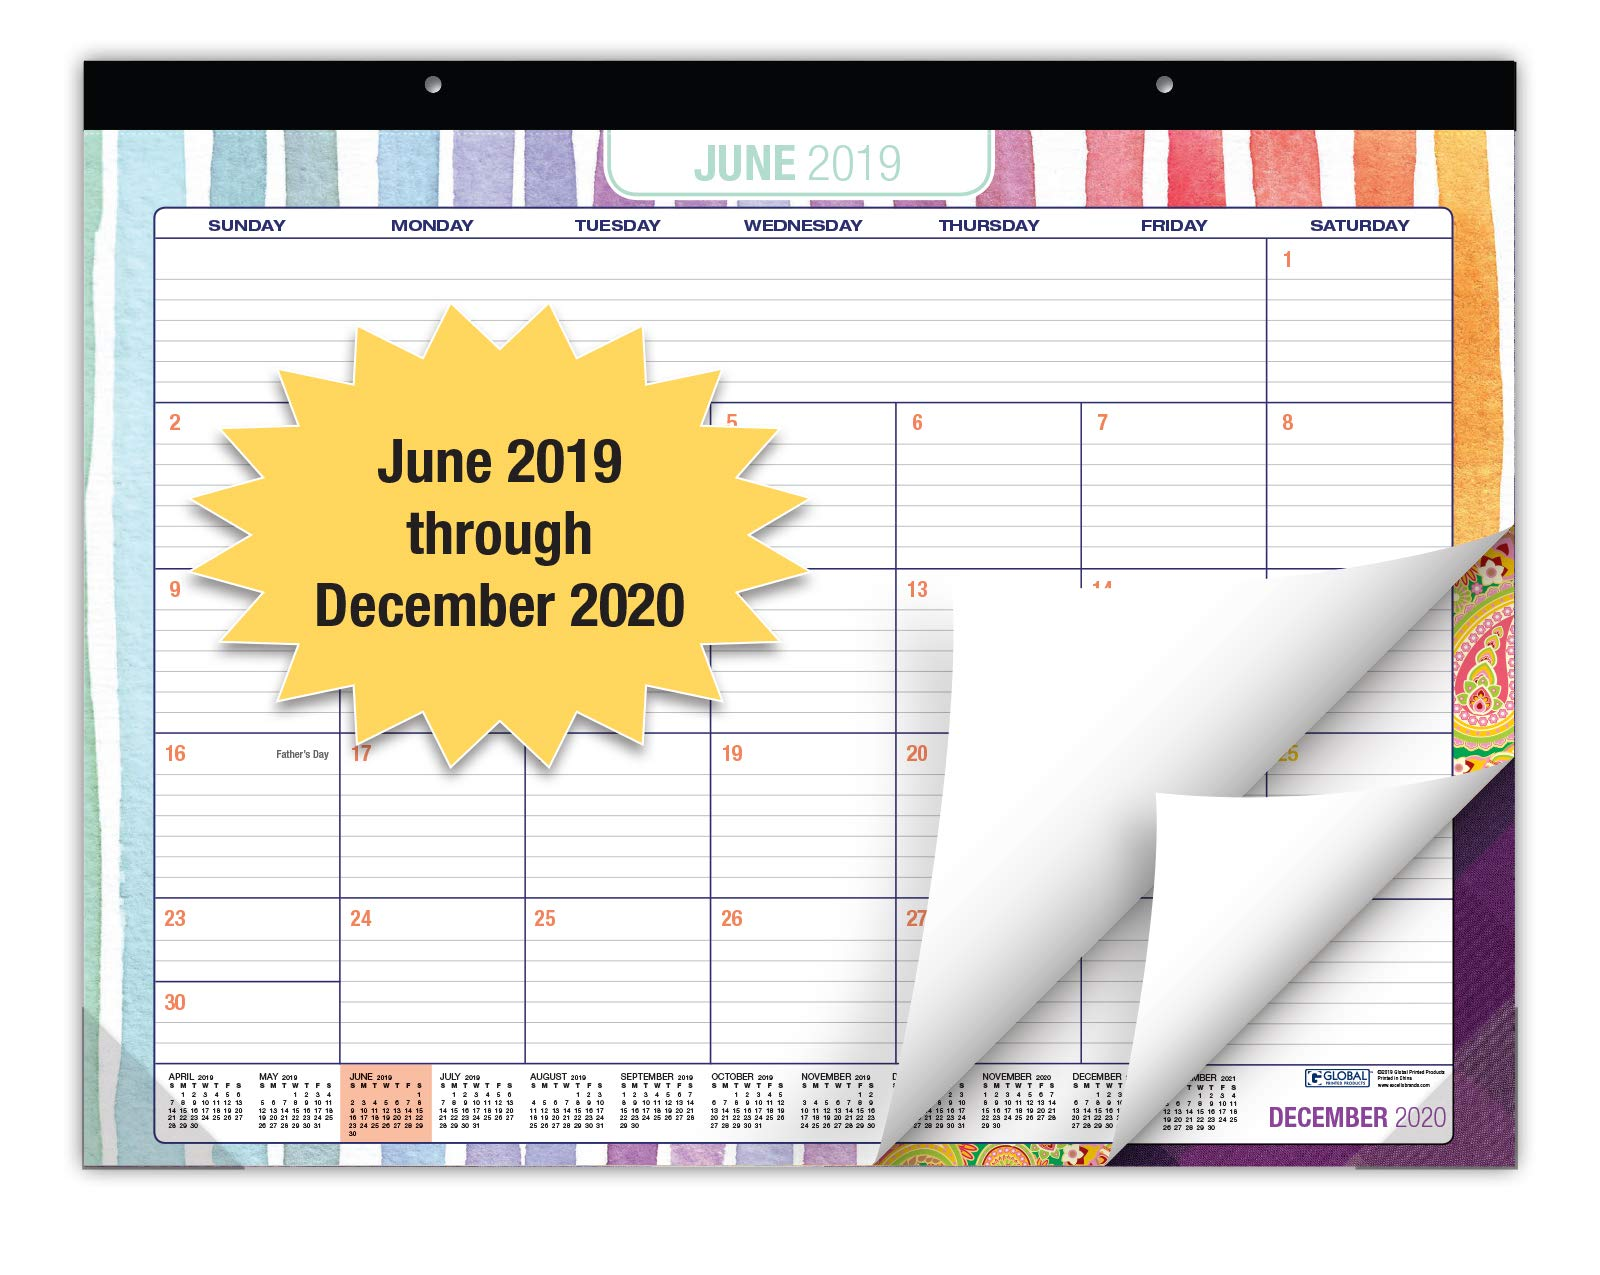 Desk Calendar 2019-2020: Large Monthly Pages - 22''x17'' - Runs from June 2019 Through December 2020 - Desk/Wall Calendar can be Used Throughout 2020. by Global Printed Products